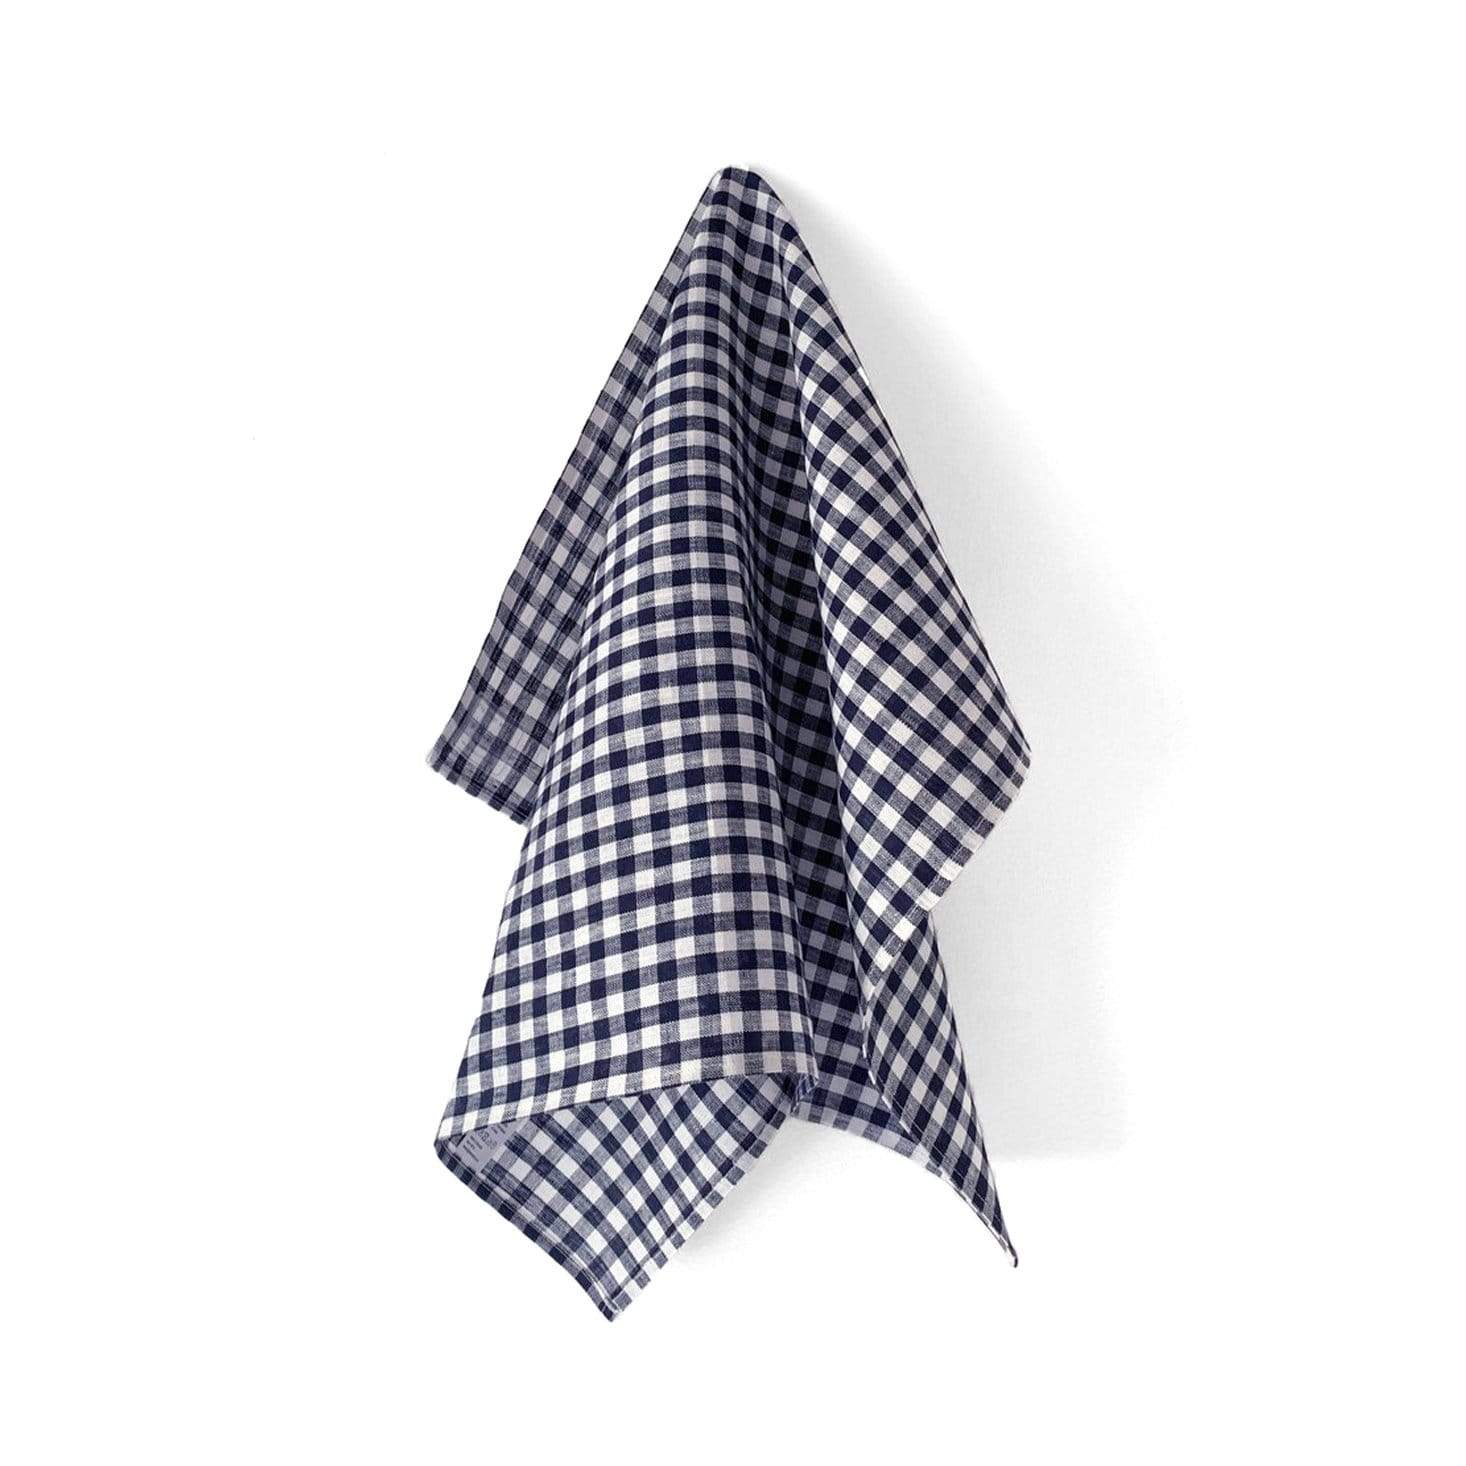 Fog Linen Work Tea Towel - Navy Check